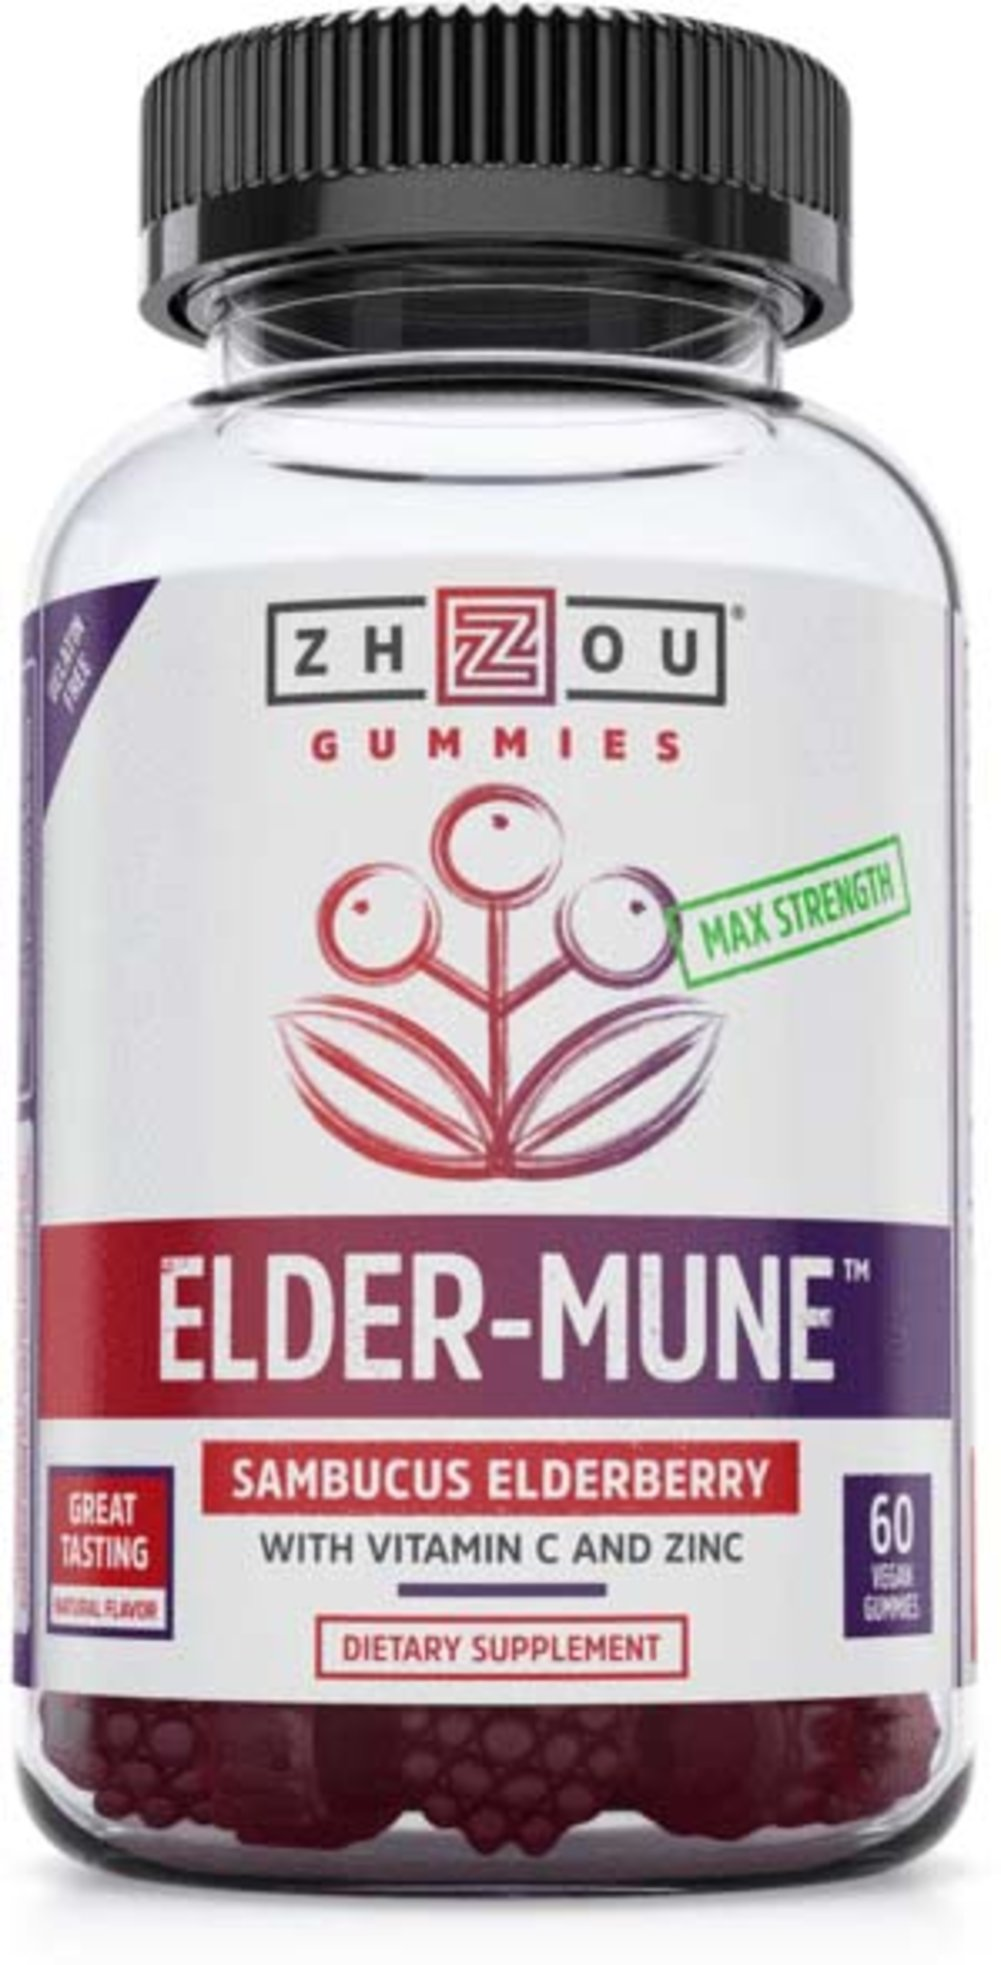 Elder-Mune Sambucus Elderberry Gummies